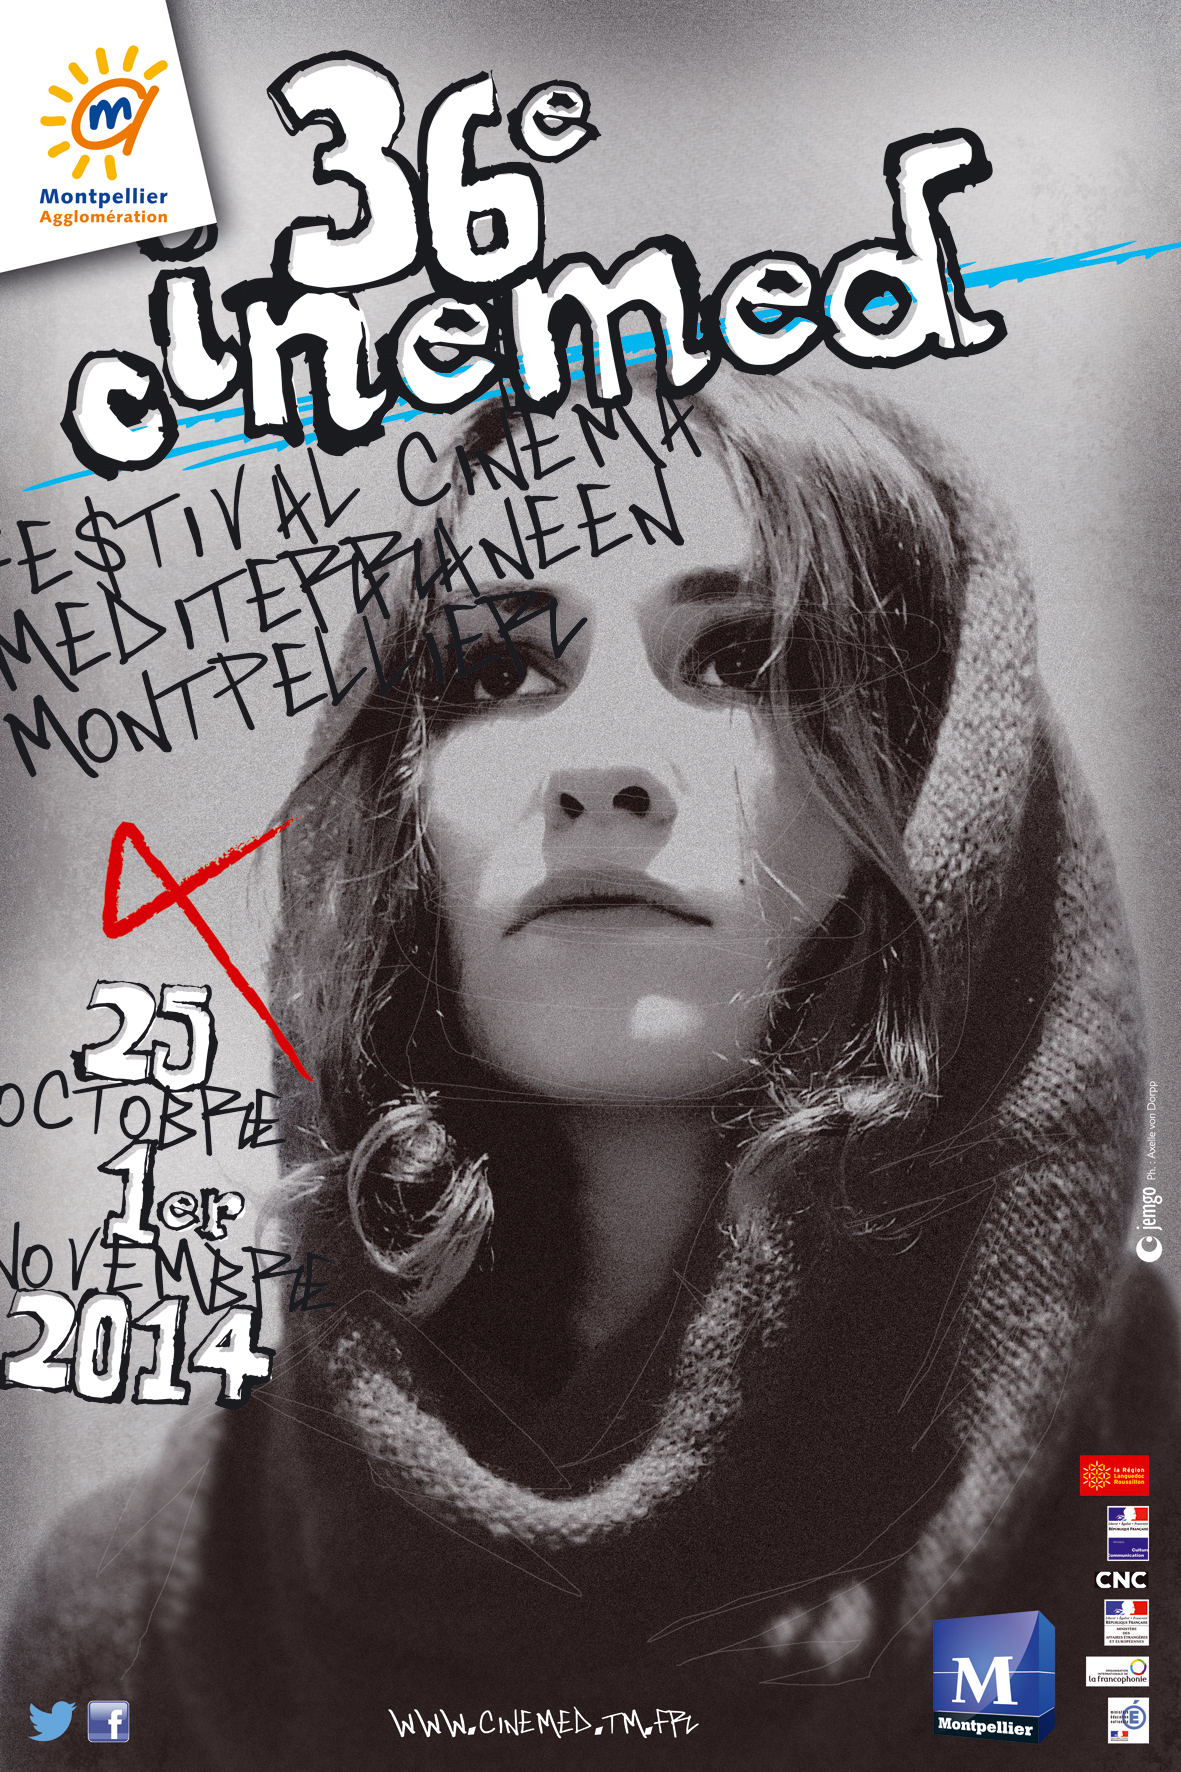 Cinemed 2014